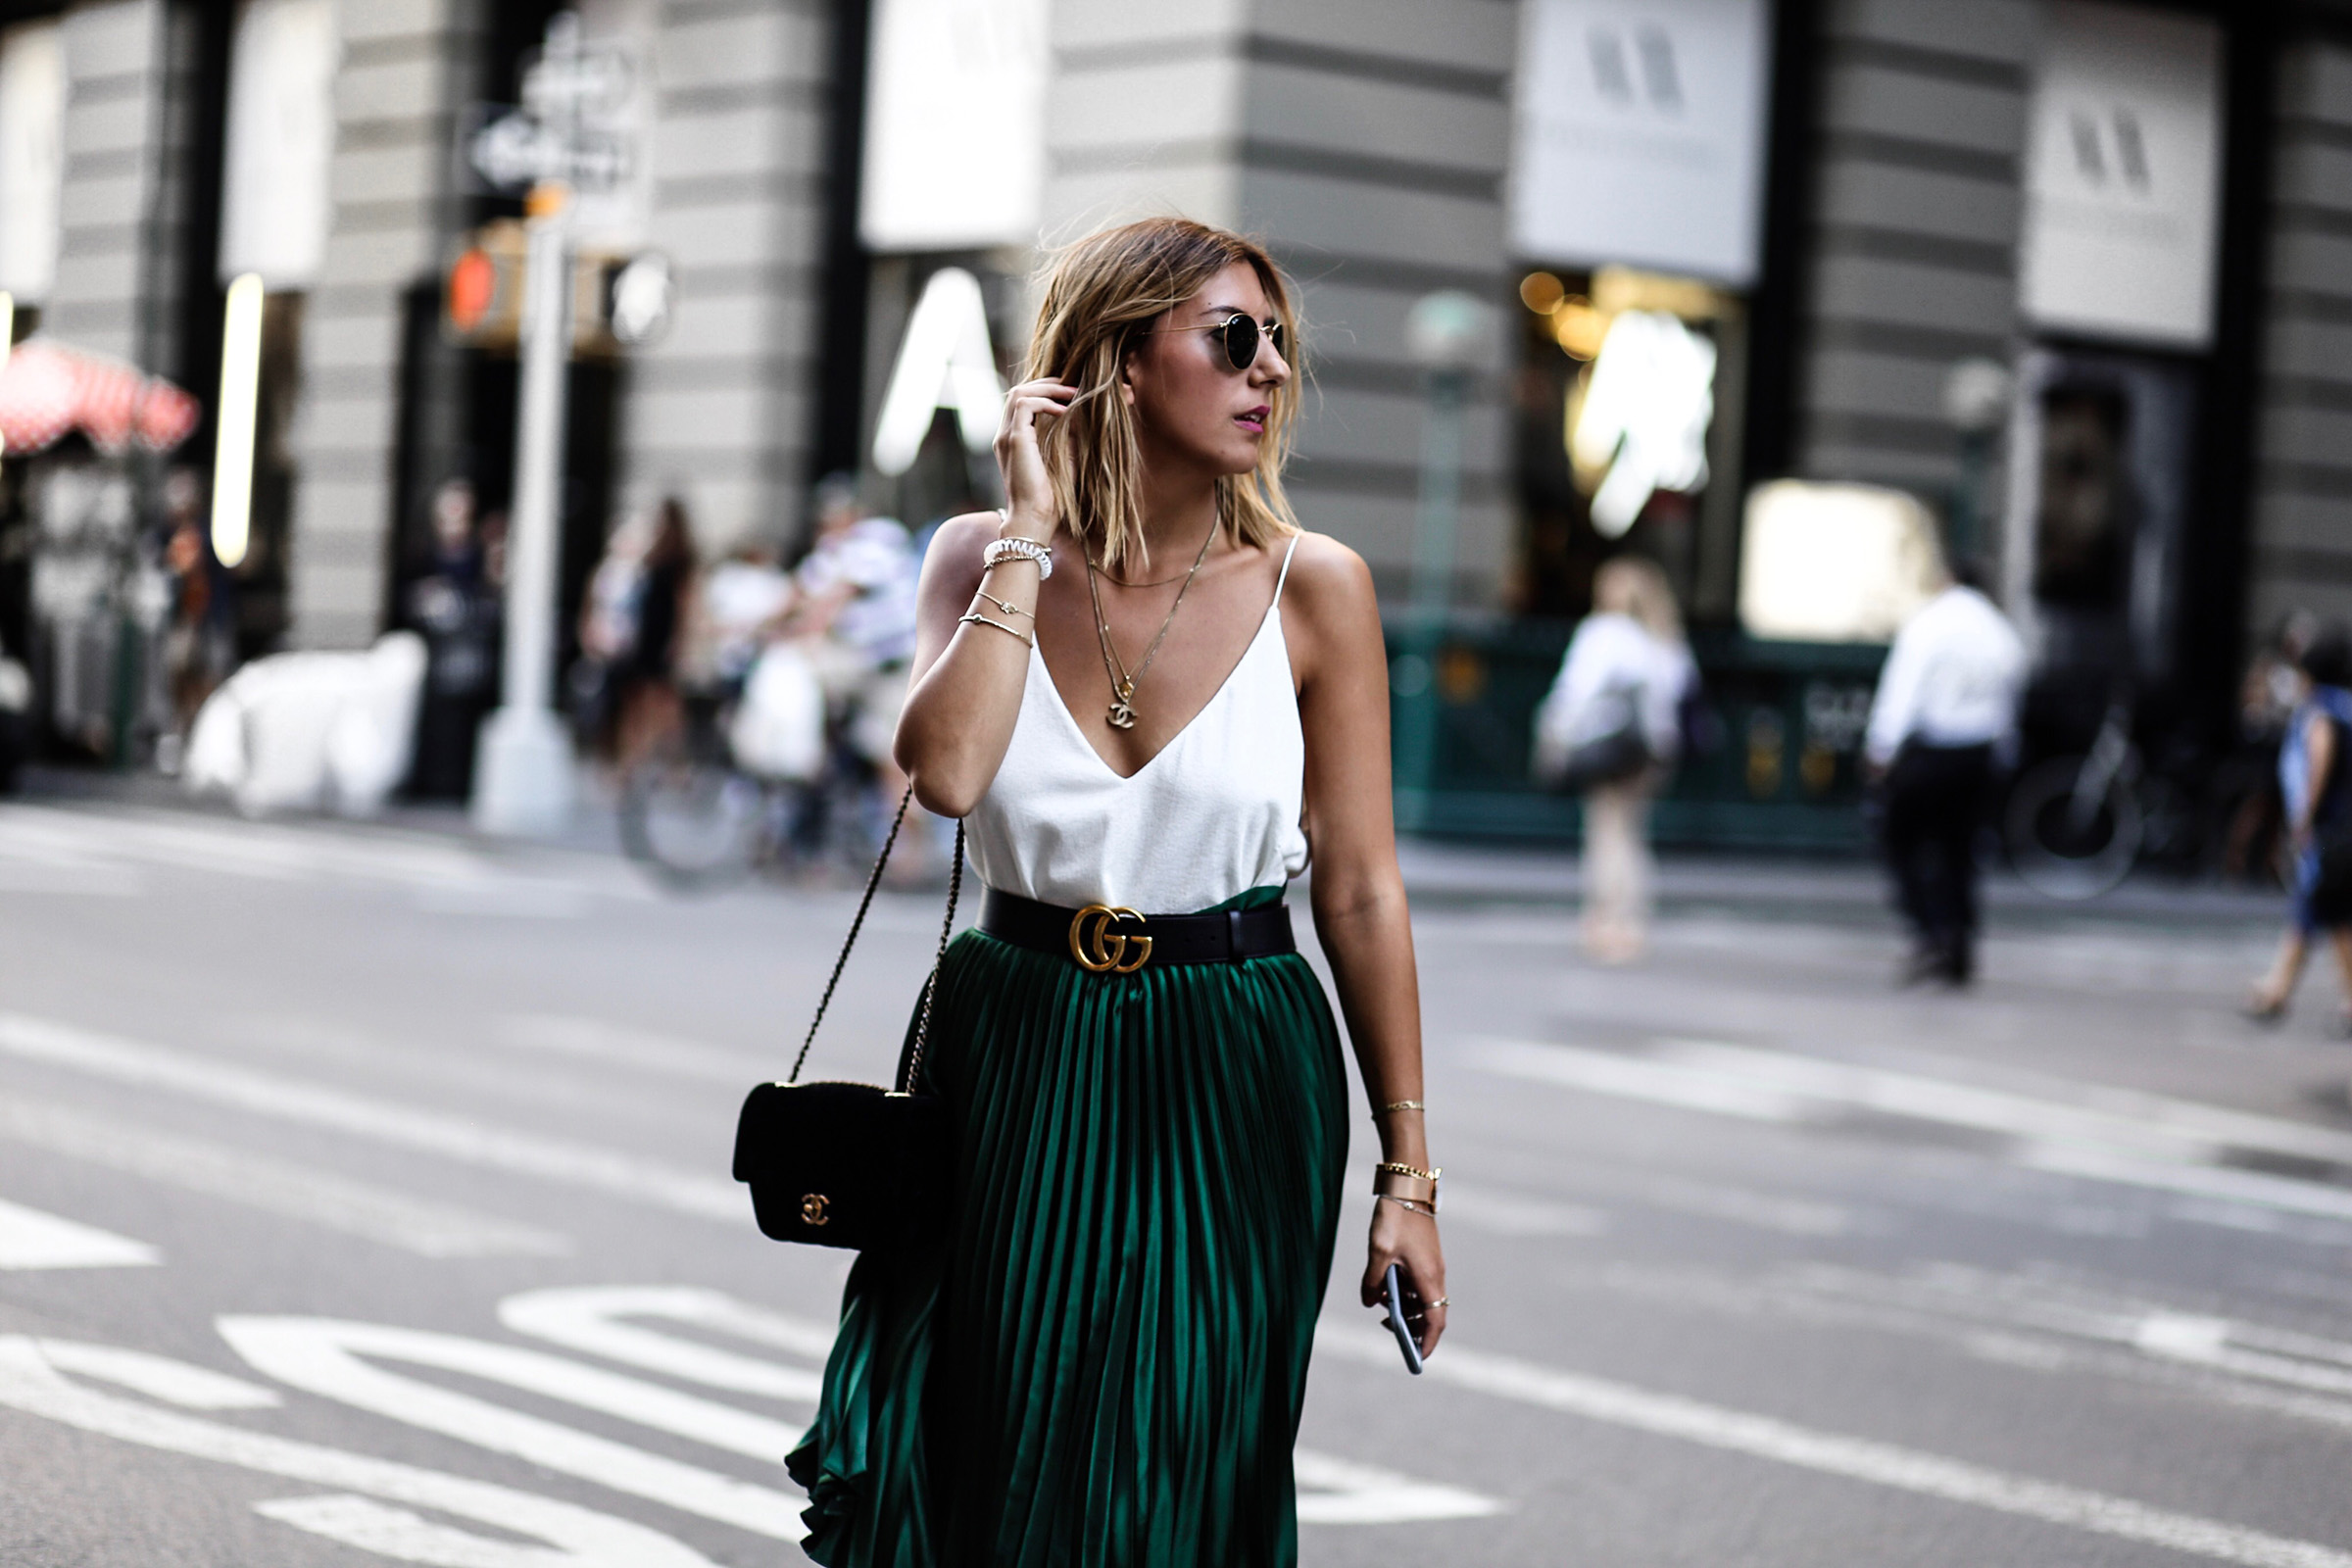 aylin_koenig_new-york black_palms_aylin_koenig_nyfw gucci_belt_blogger chanel_velvet_bag balenciaga_ceinture_boots gucci_belt_black aylin_koenig_gucci_belt ...